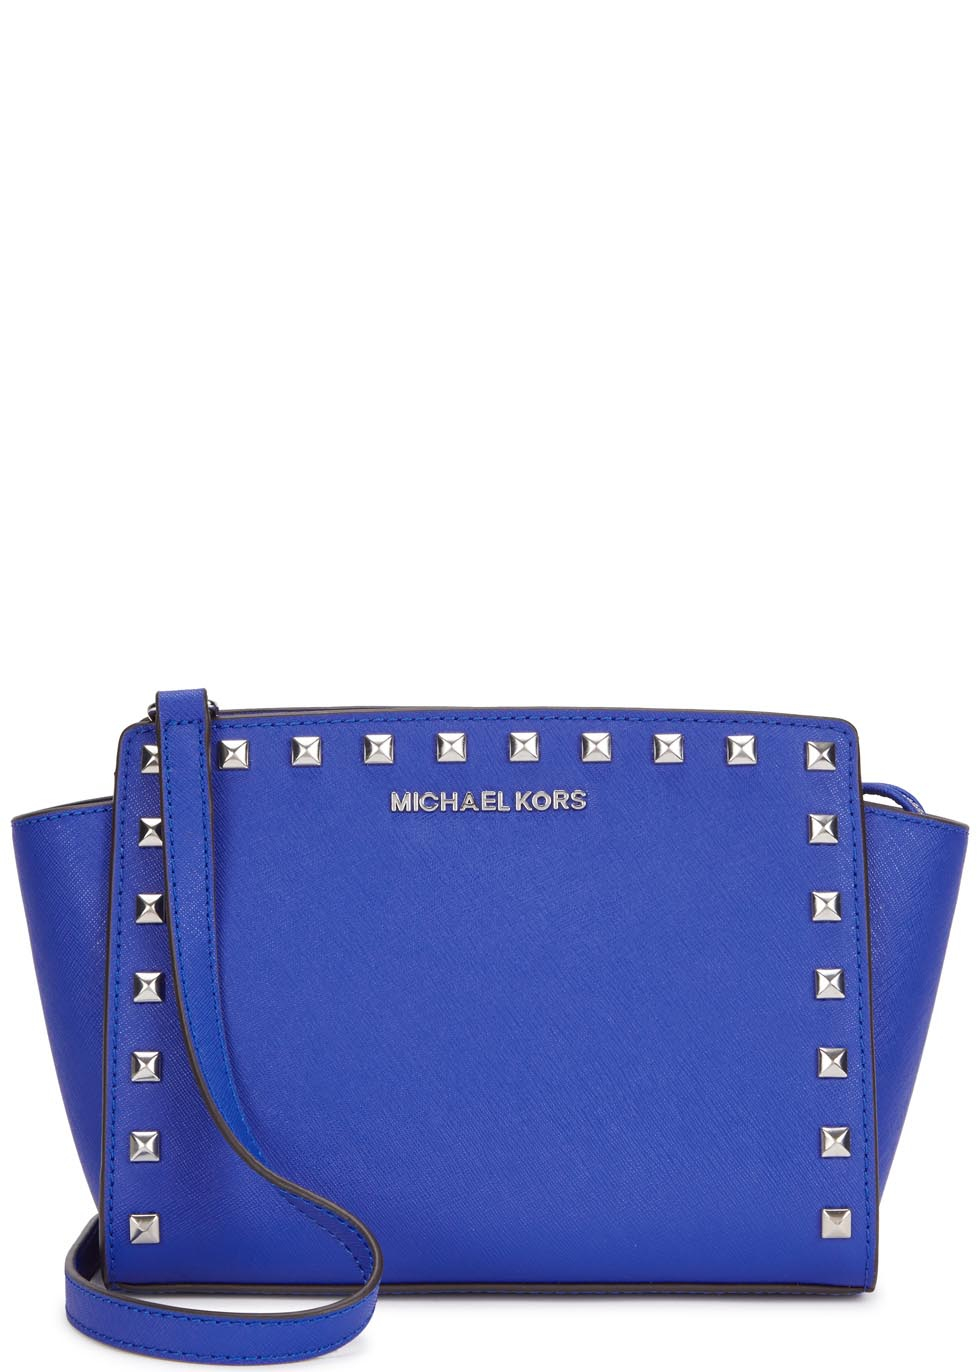 38a4c5732d71 Michael Kors Selma Blue Studded Leather Cross-body Bag in Blue - Lyst